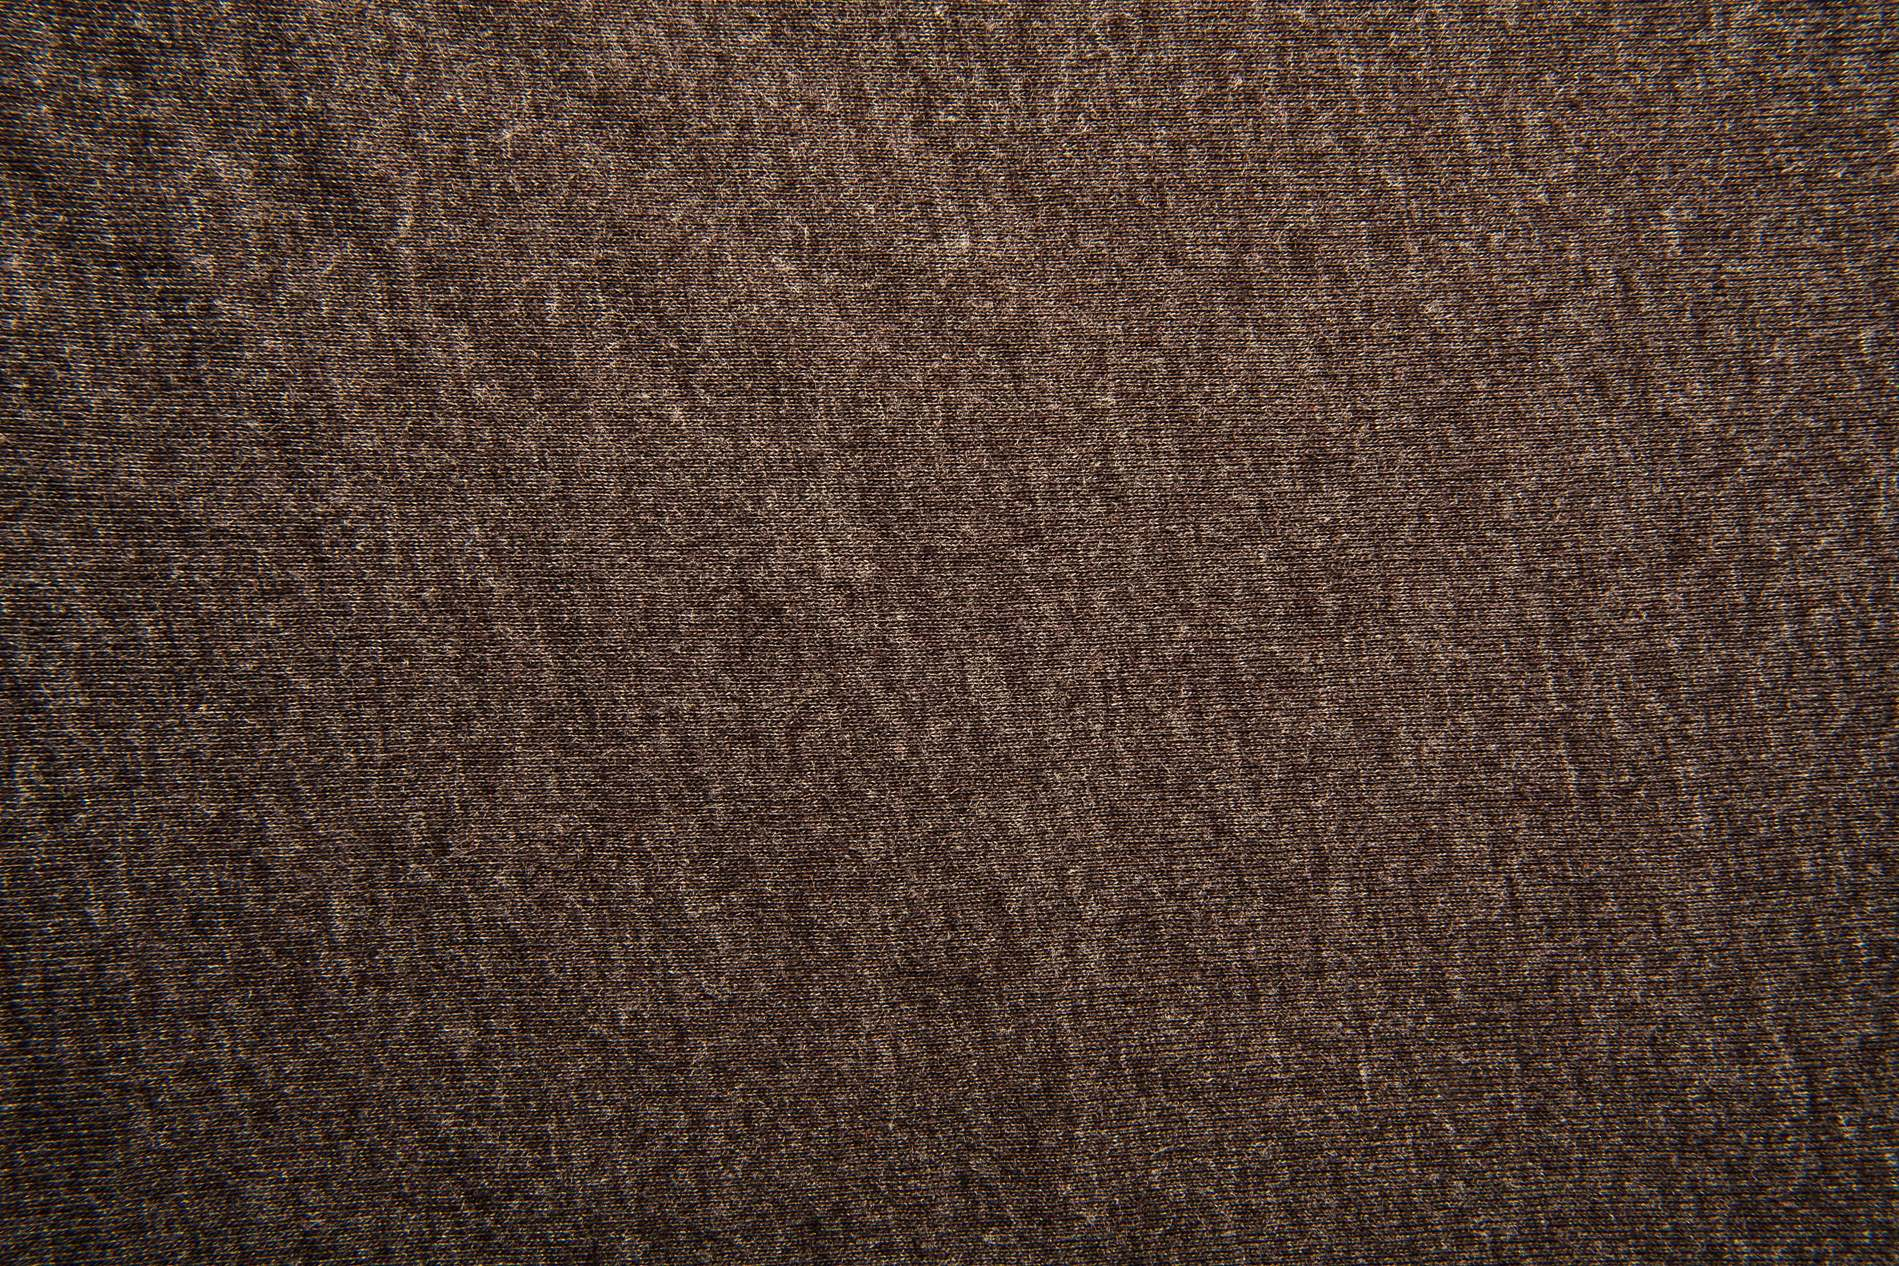 Brown Fabric Texture Background Photohdx